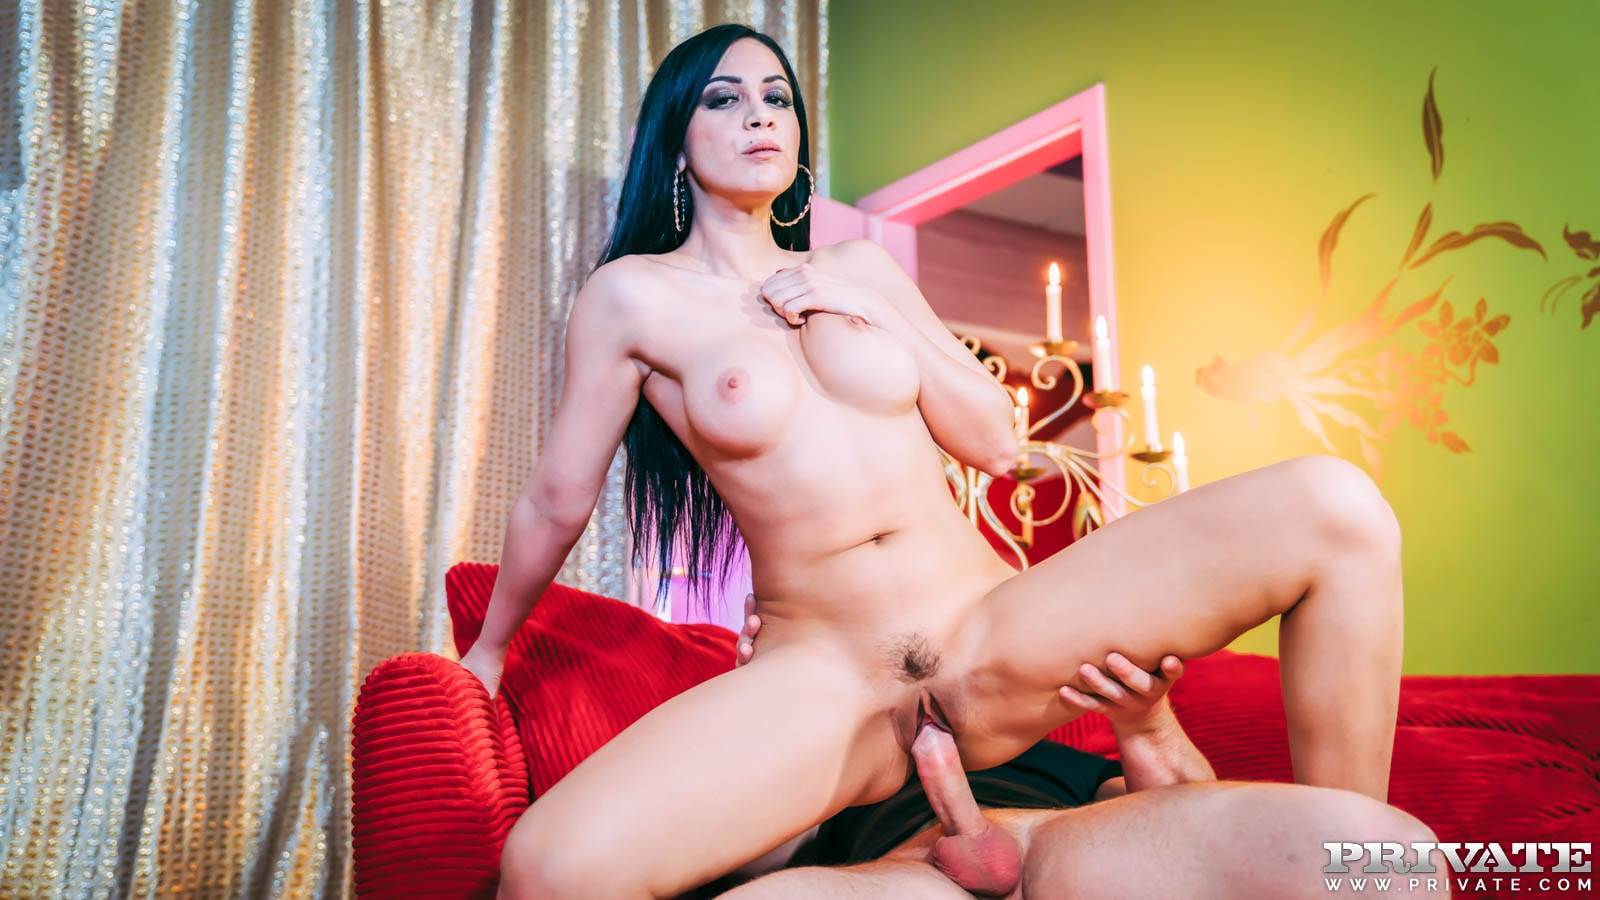 Free Porn Samples Of Private - World Top Porn Site Private-1299